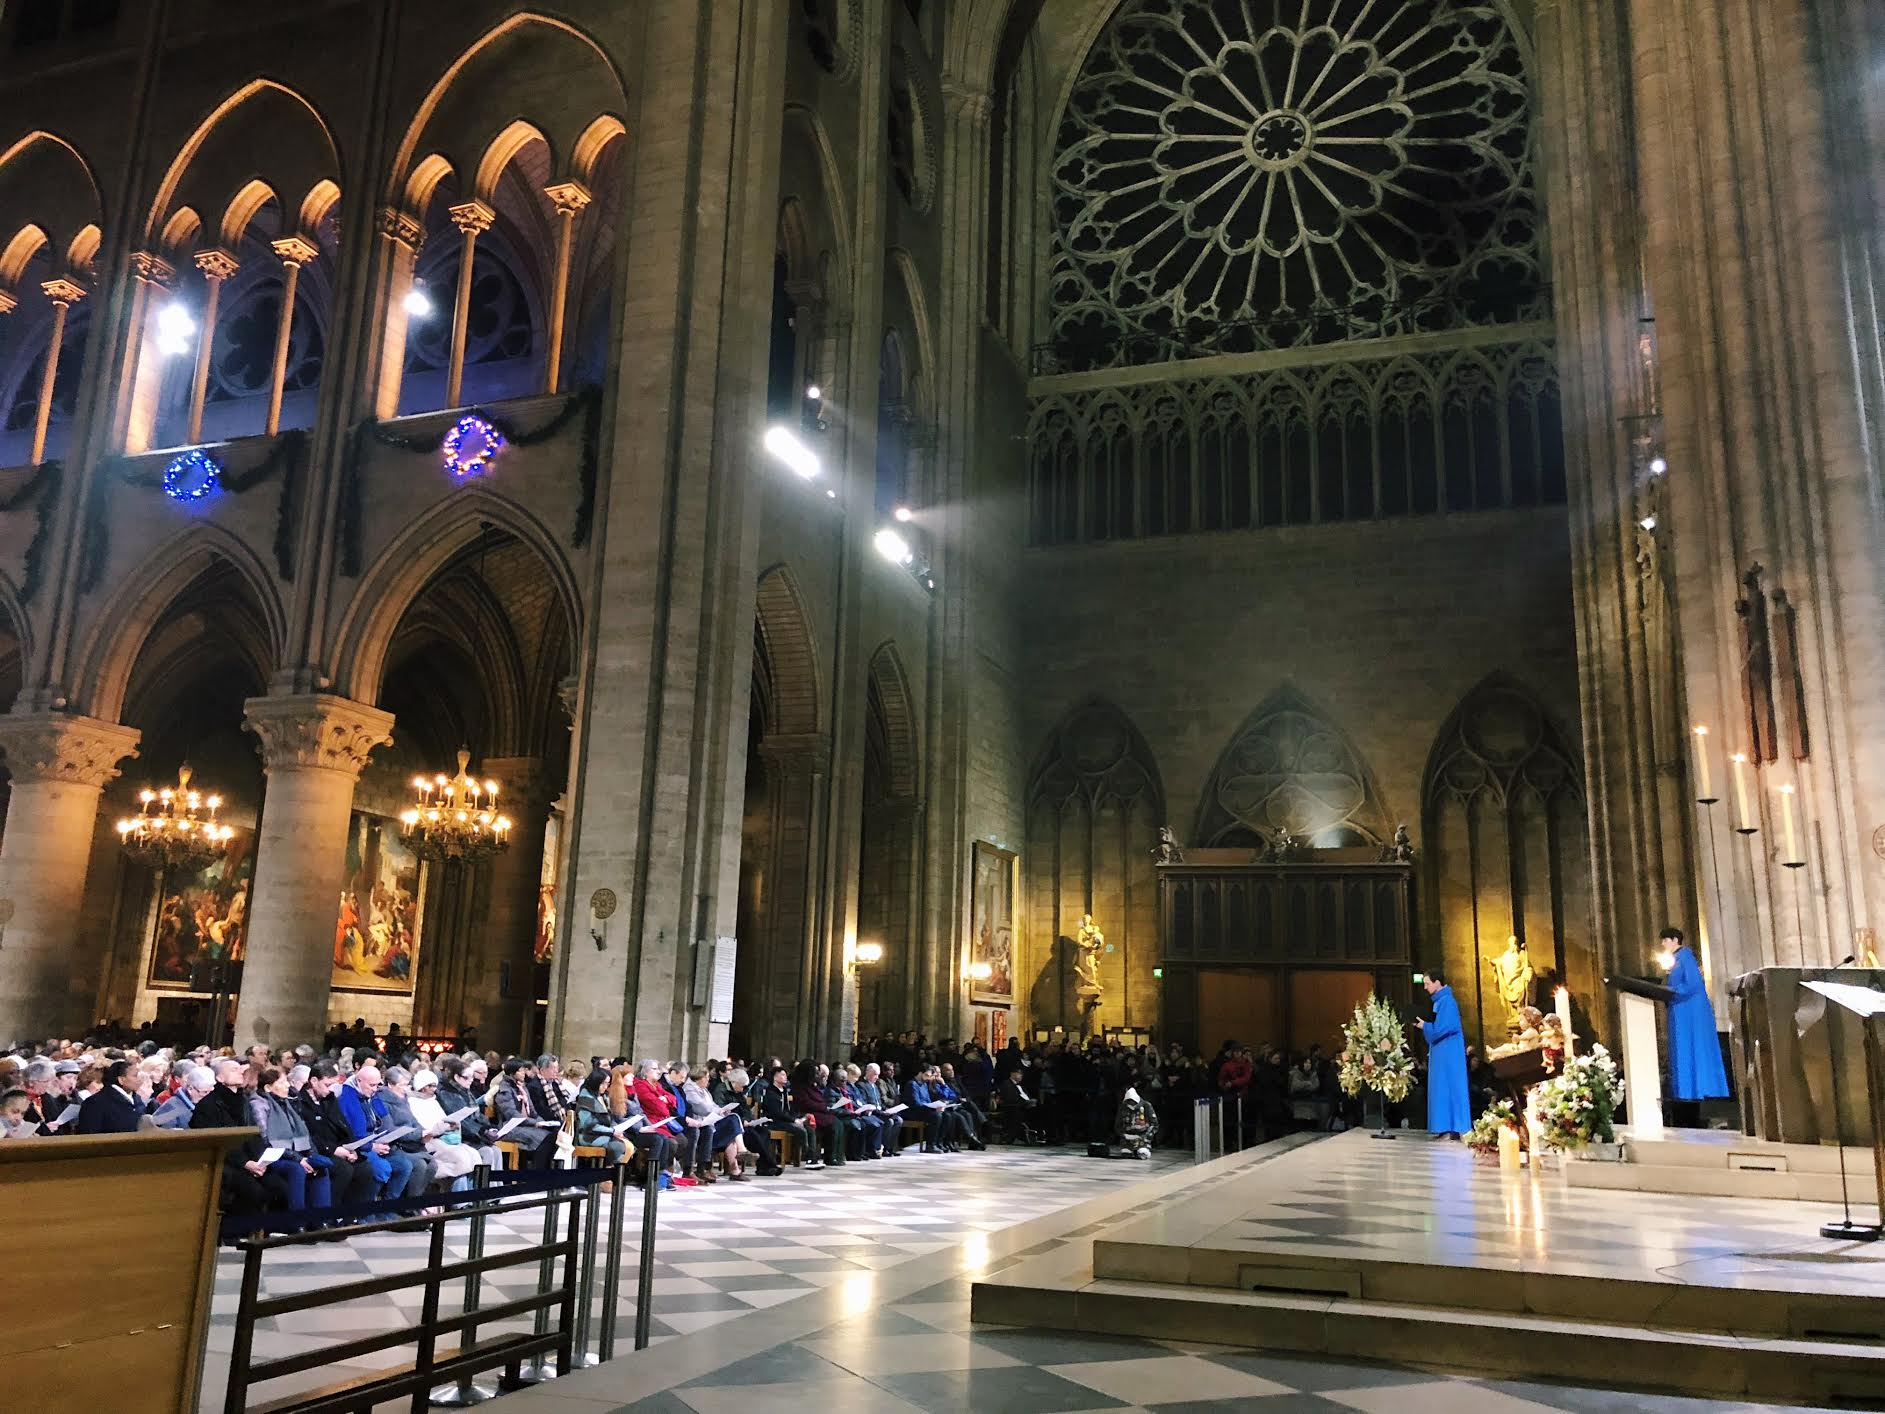 Muslim-travel-guide-Paris-mass-at-Notre-Dame-Cathedral.jpg